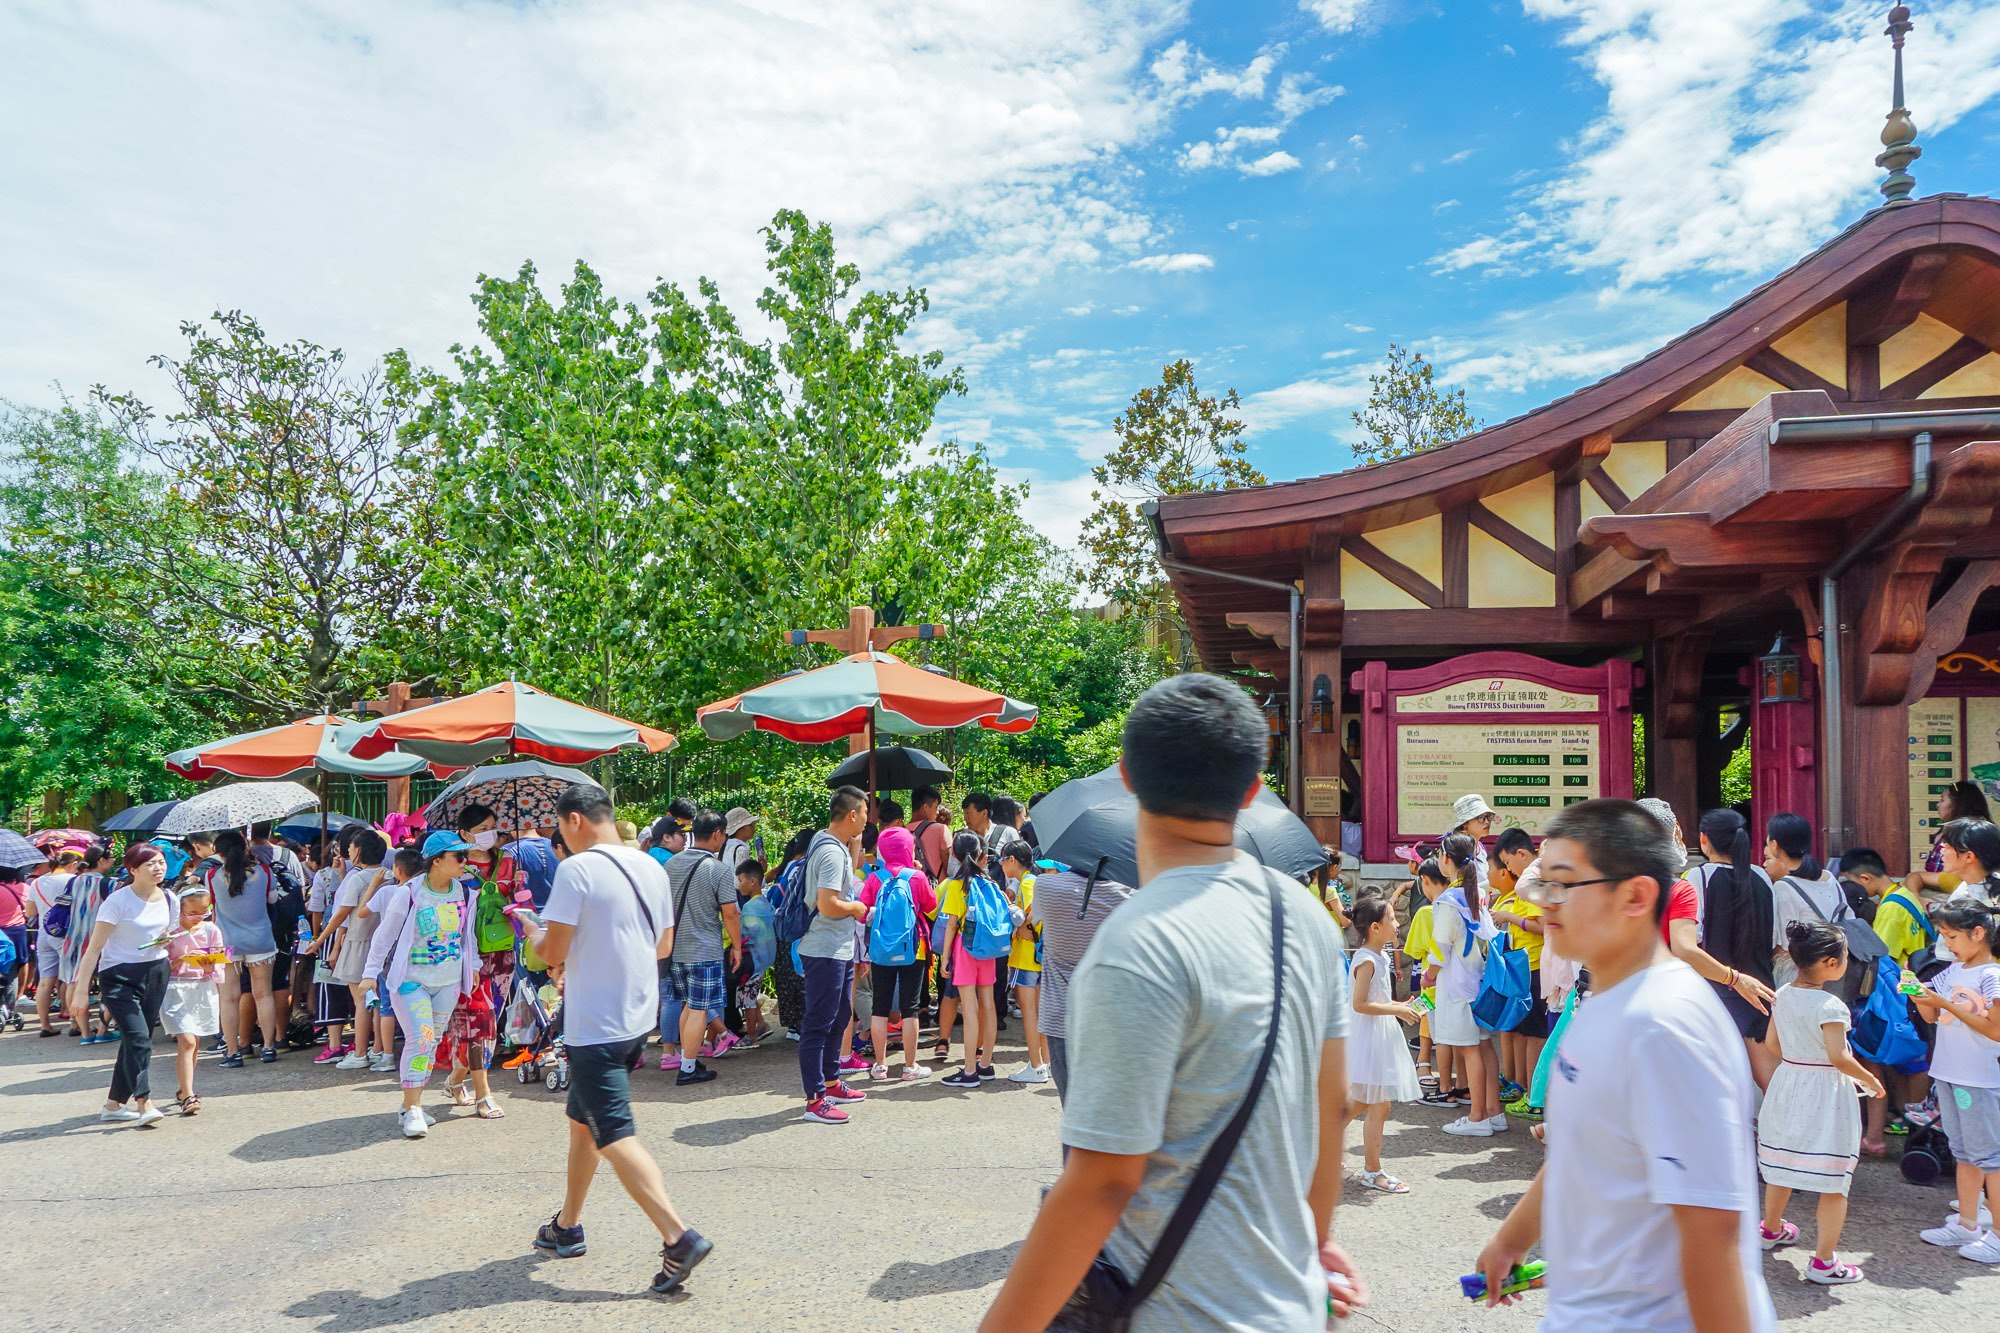 The FastPass lines at Shanghai Disneyland are incredibly long.